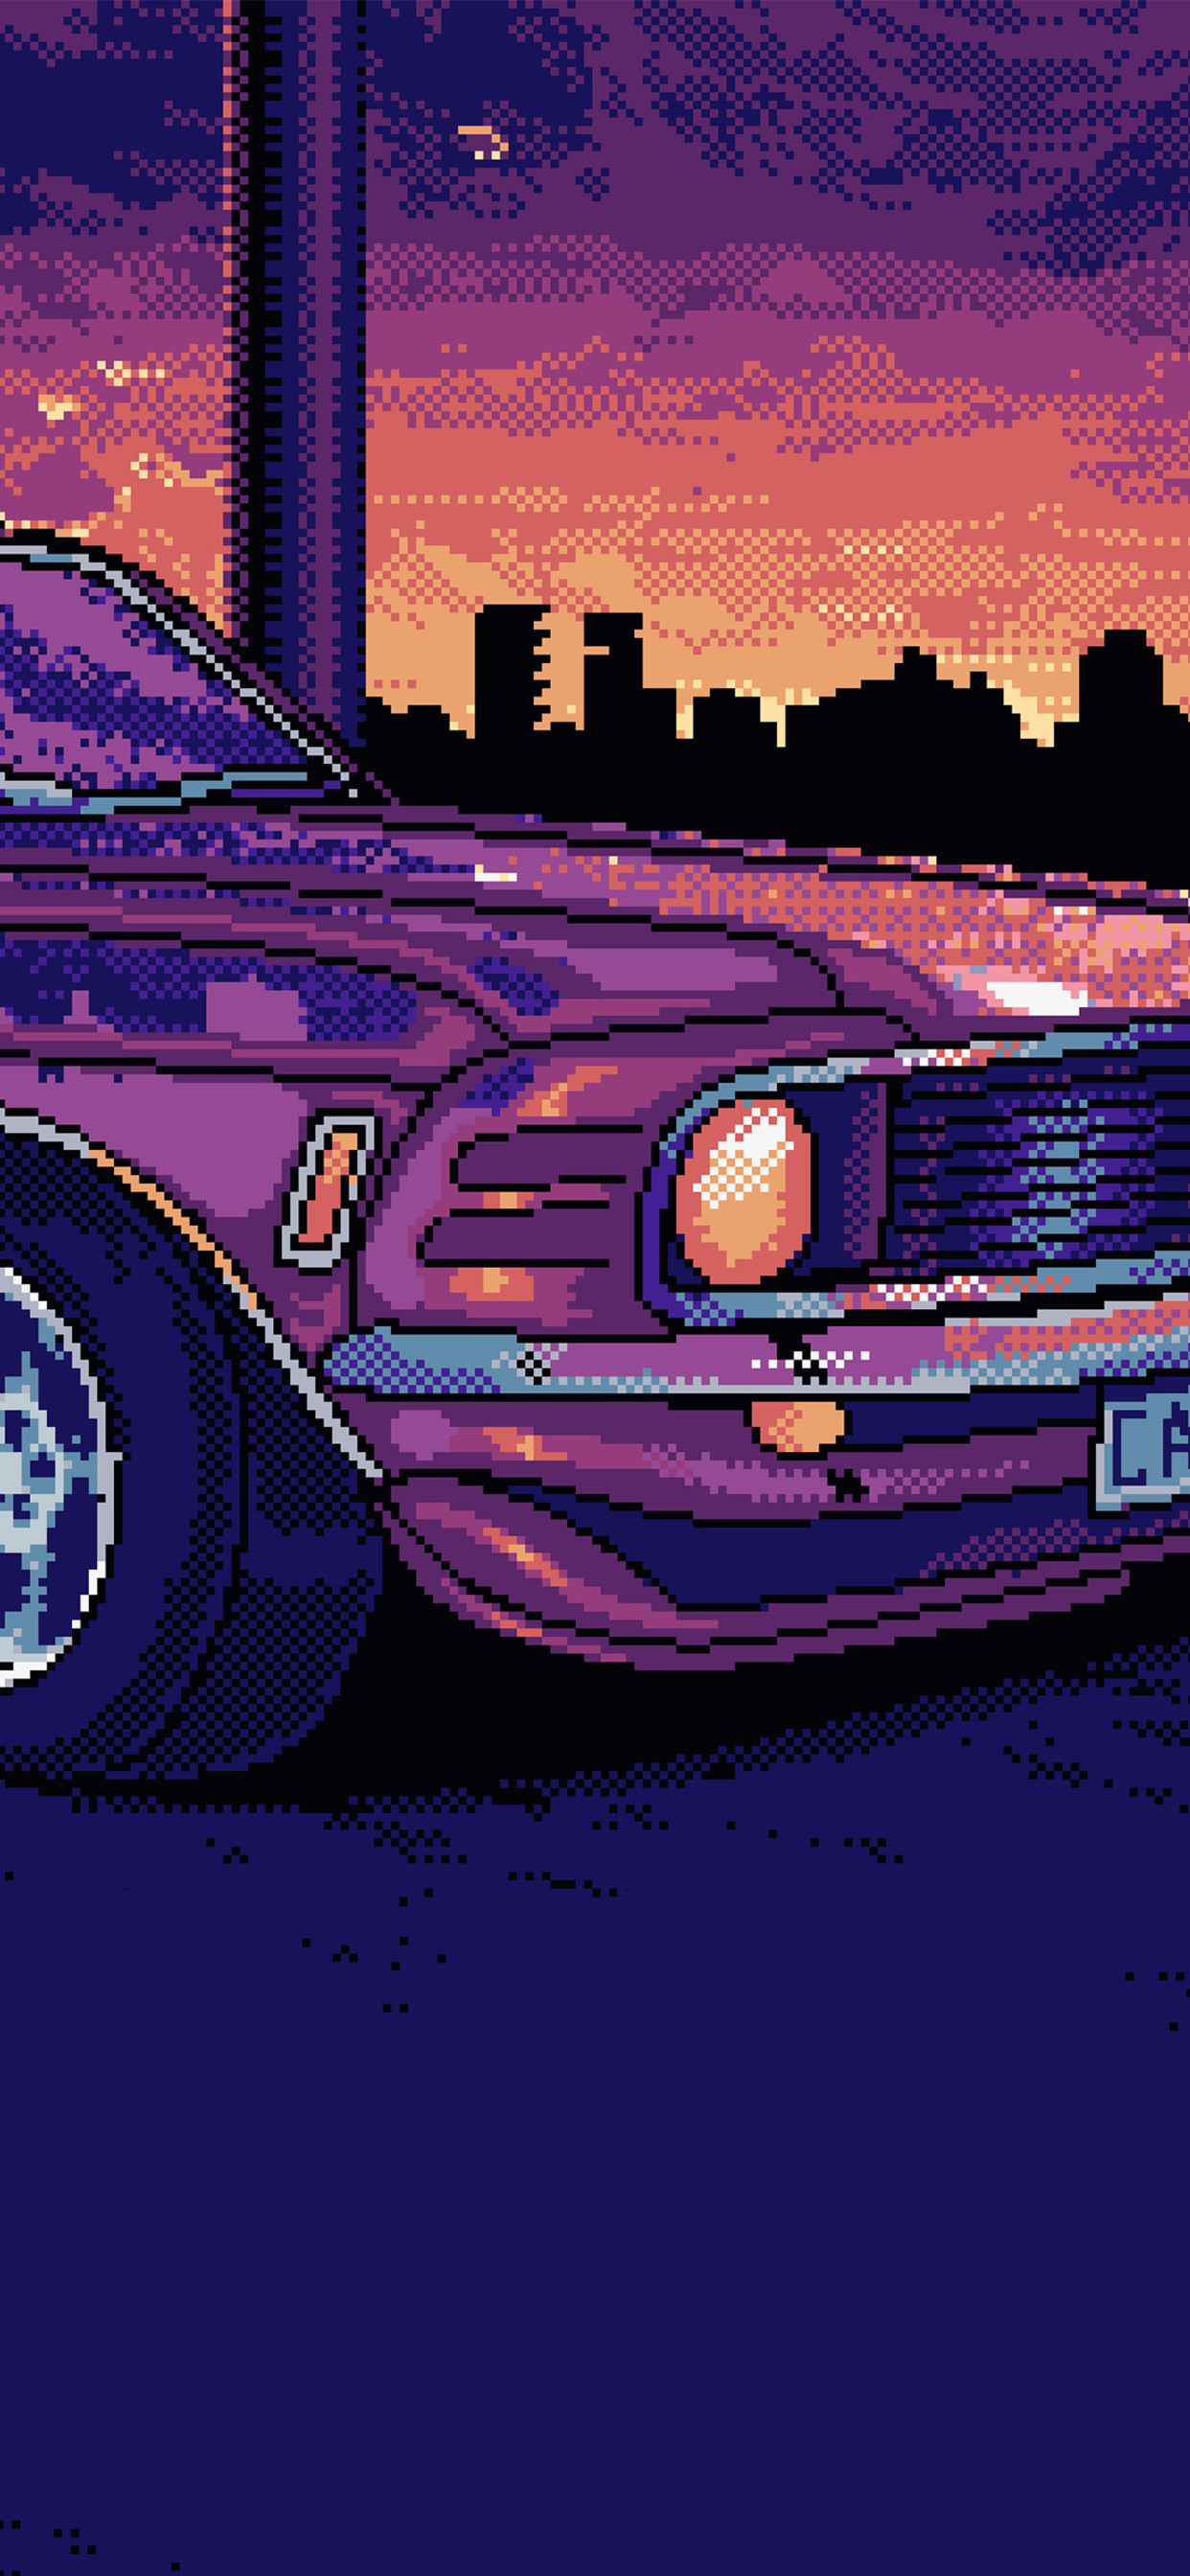 8 Bit Mustang Iphone Xs Max Hd 4k Wallpapers Images Car Night Anime Gif 1358080 Hd Wallpaper Backgrounds Download